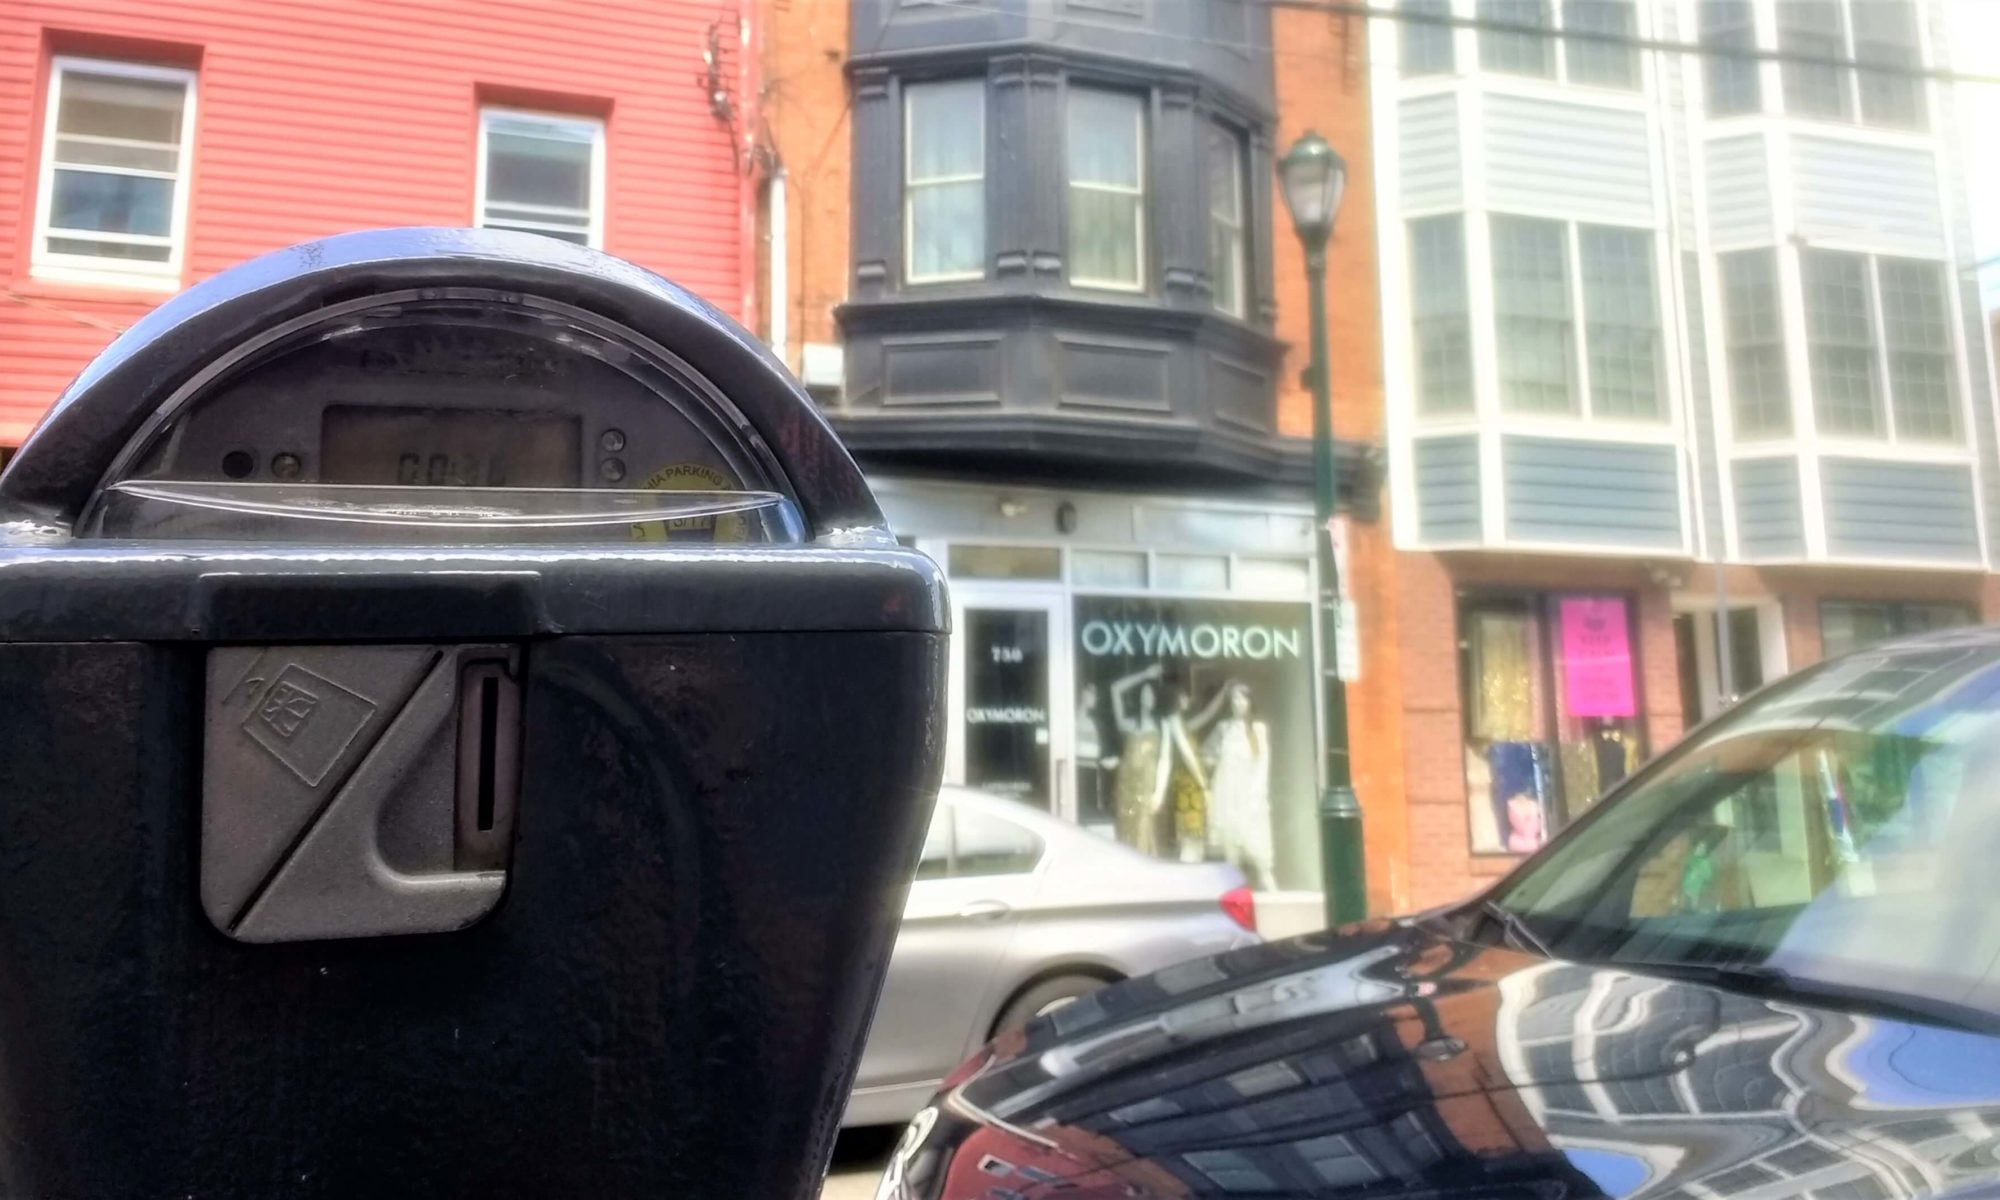 A parking meter in Queen Village, demonstrating parking rules in Philadelphia | Permit Philly